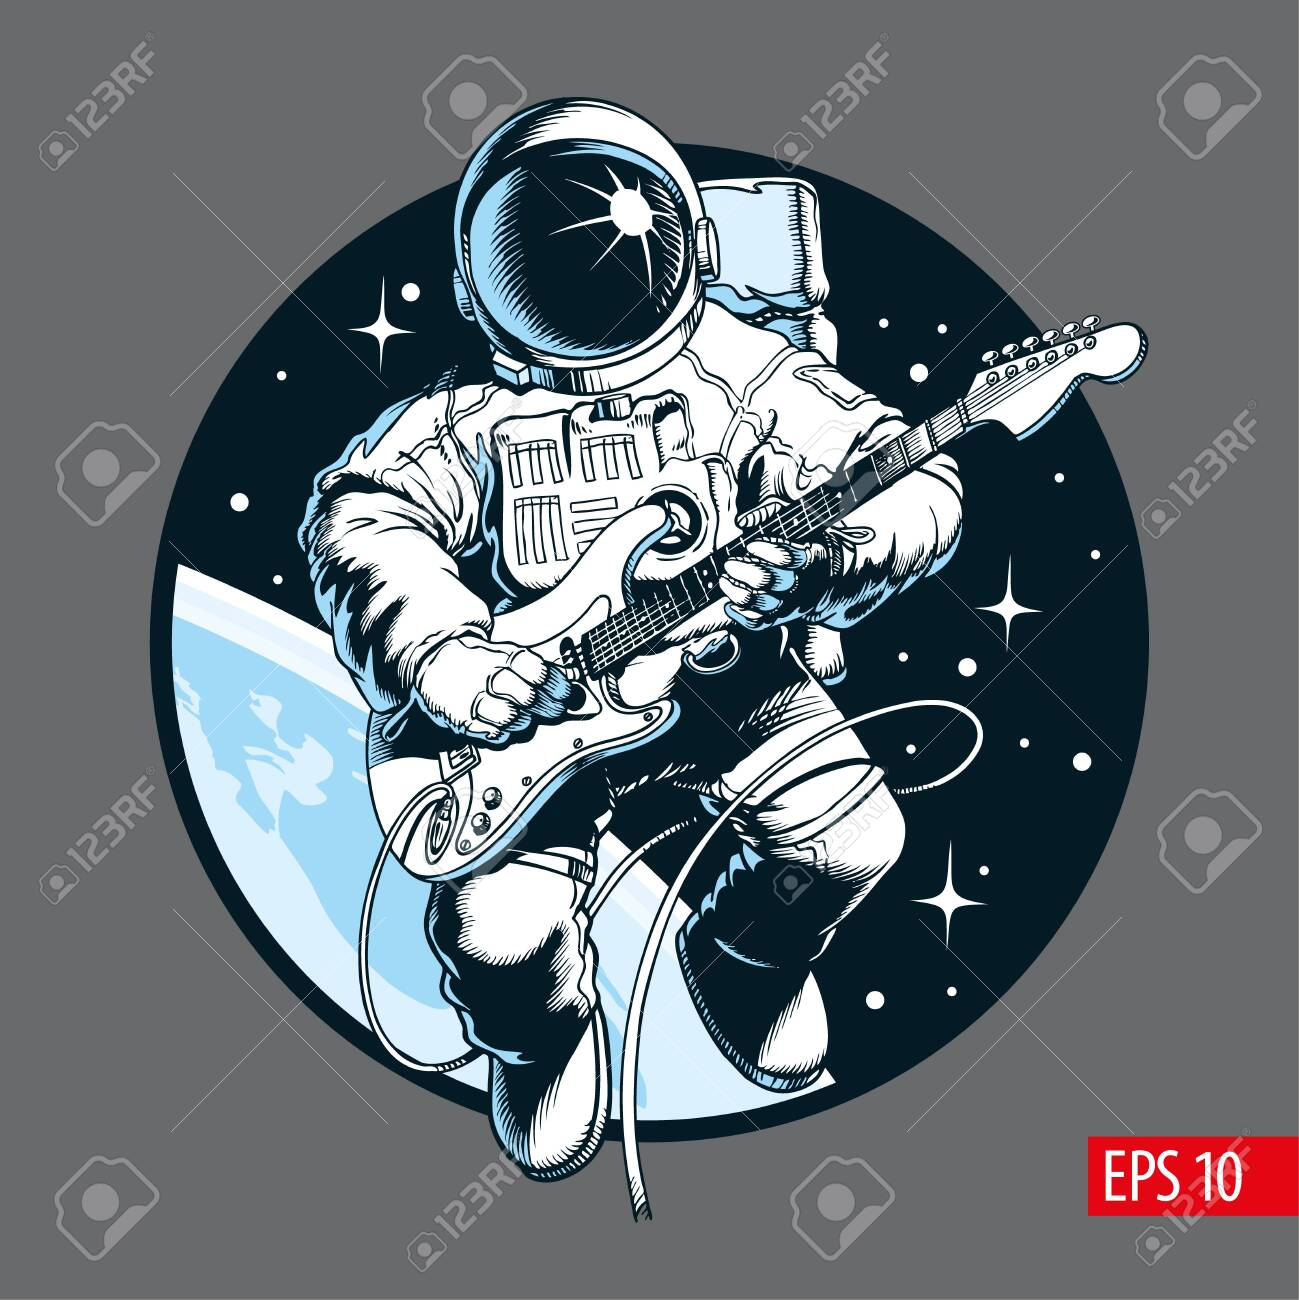 Astronaut playing electric guitar in space. Space tourist. Comic style vector illustration. - 119865813